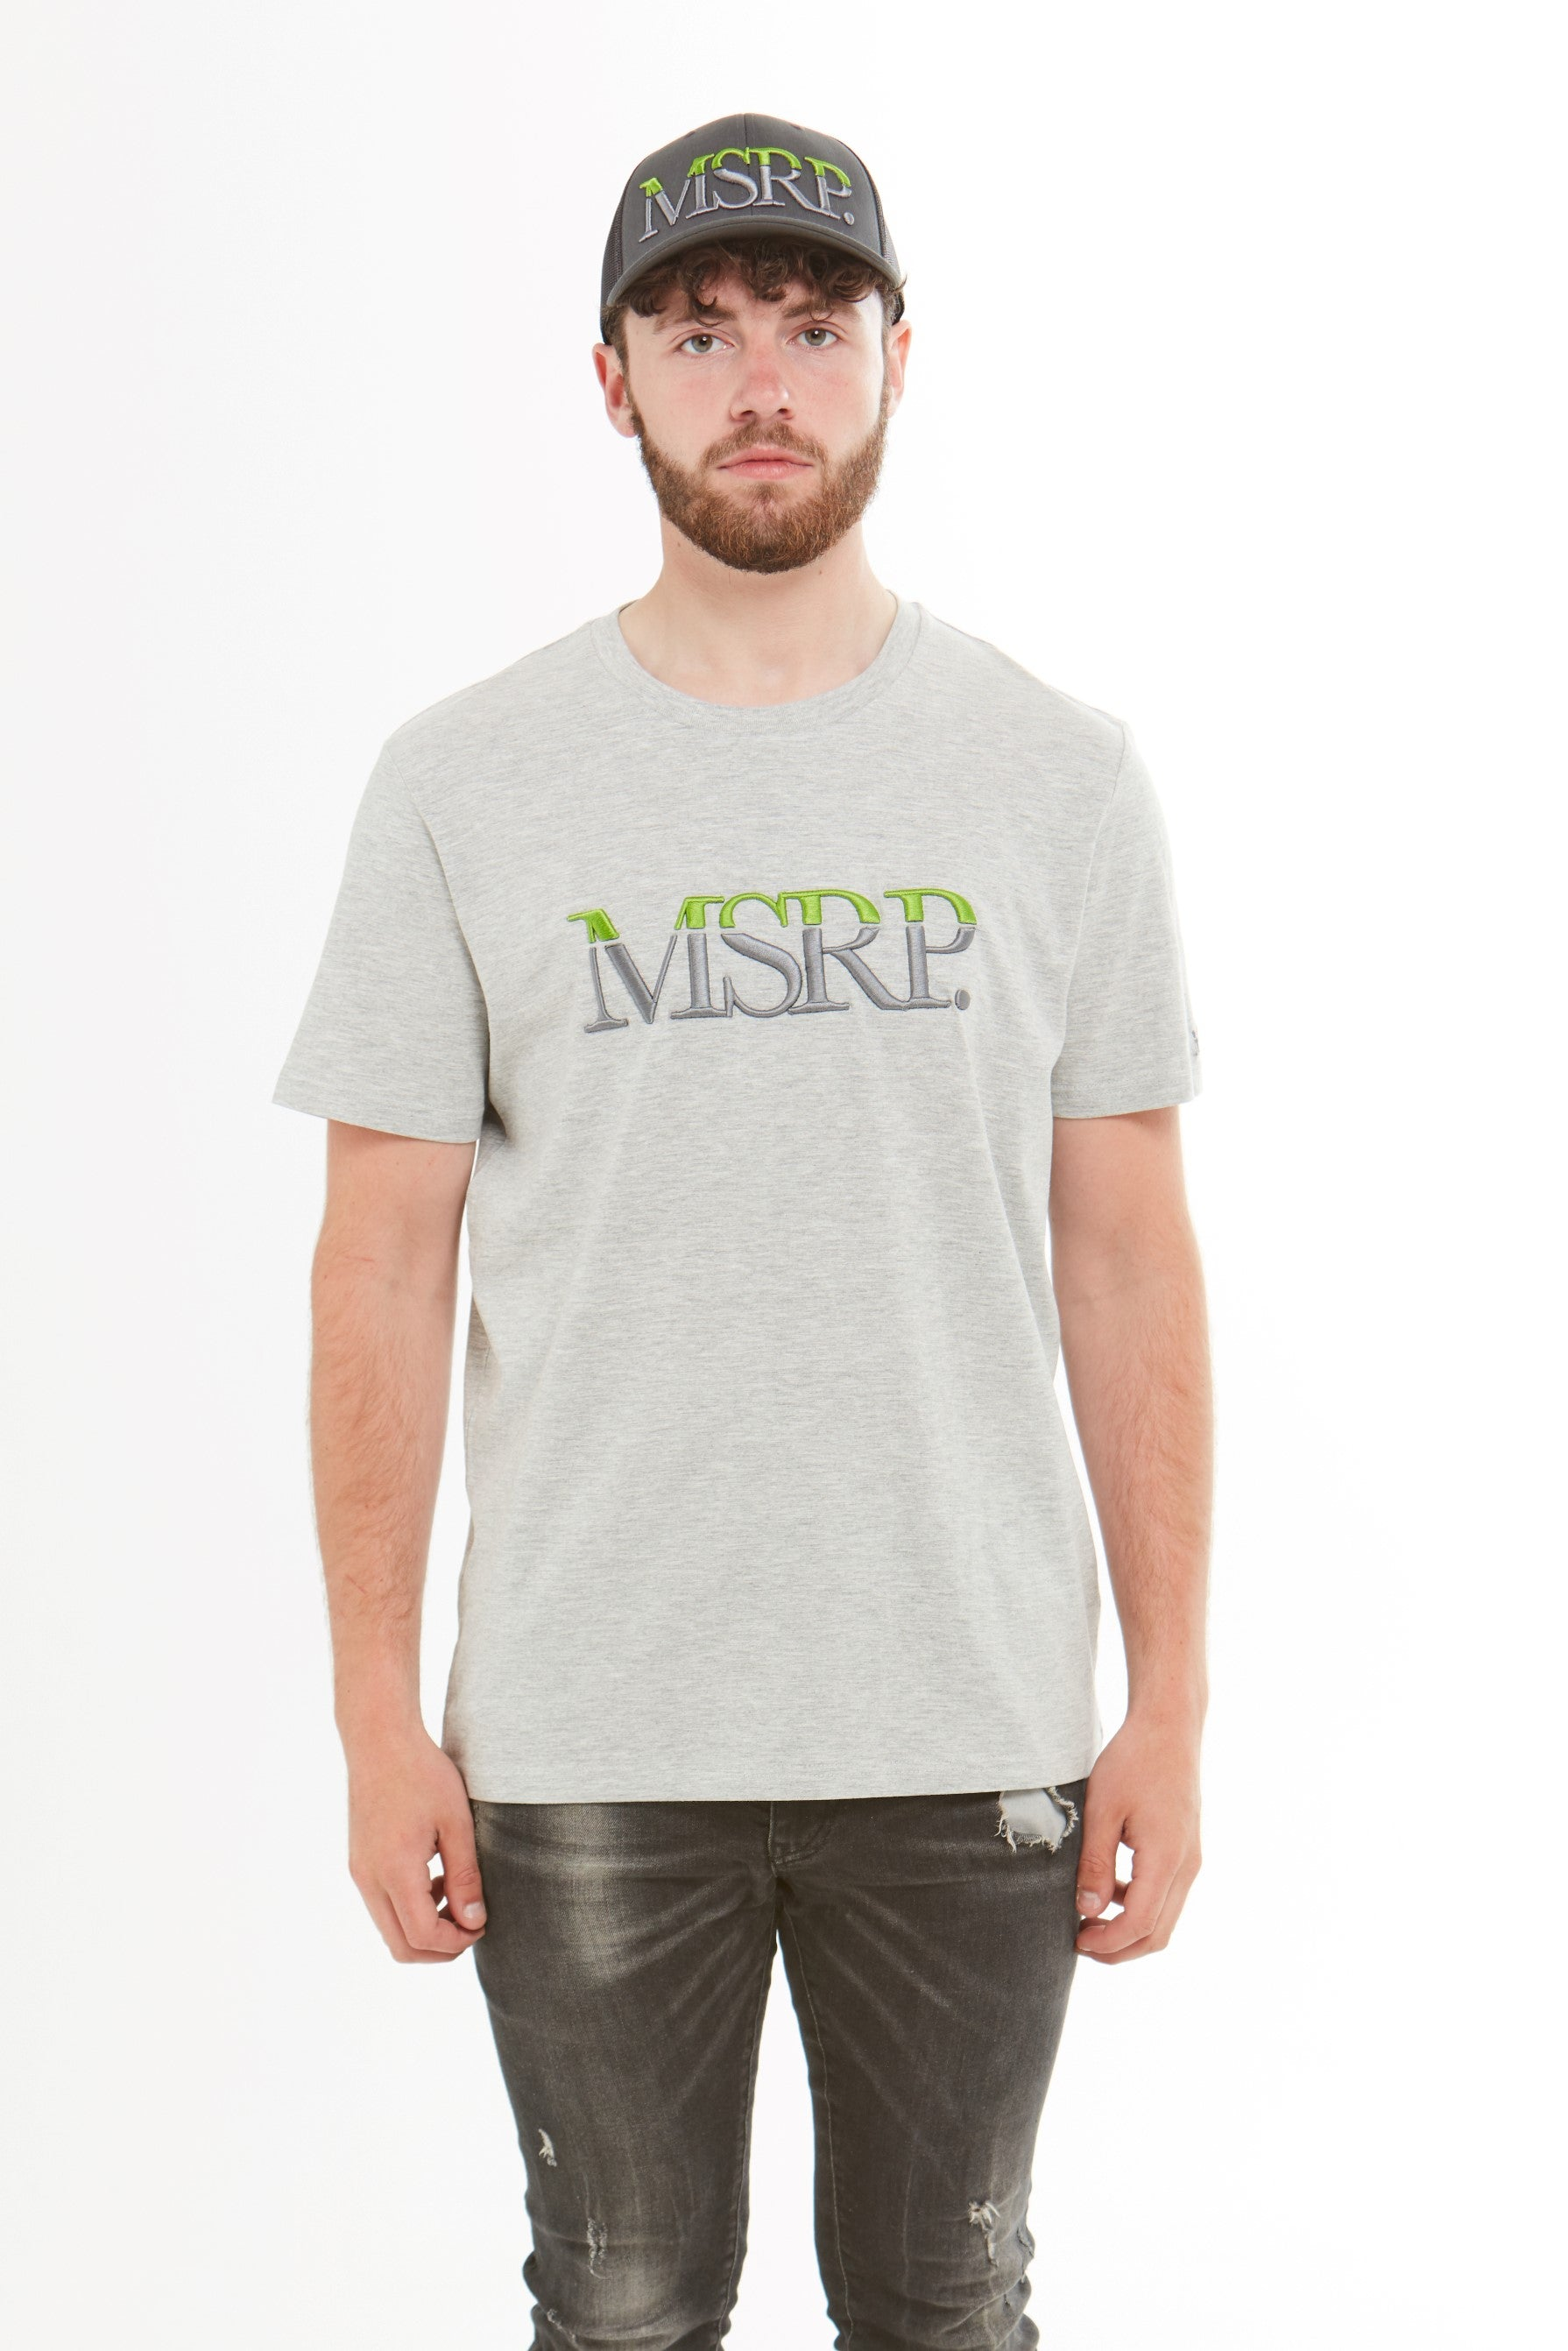 MSRP Embroidered T-Shirt (Lime/Grey) (Grey)